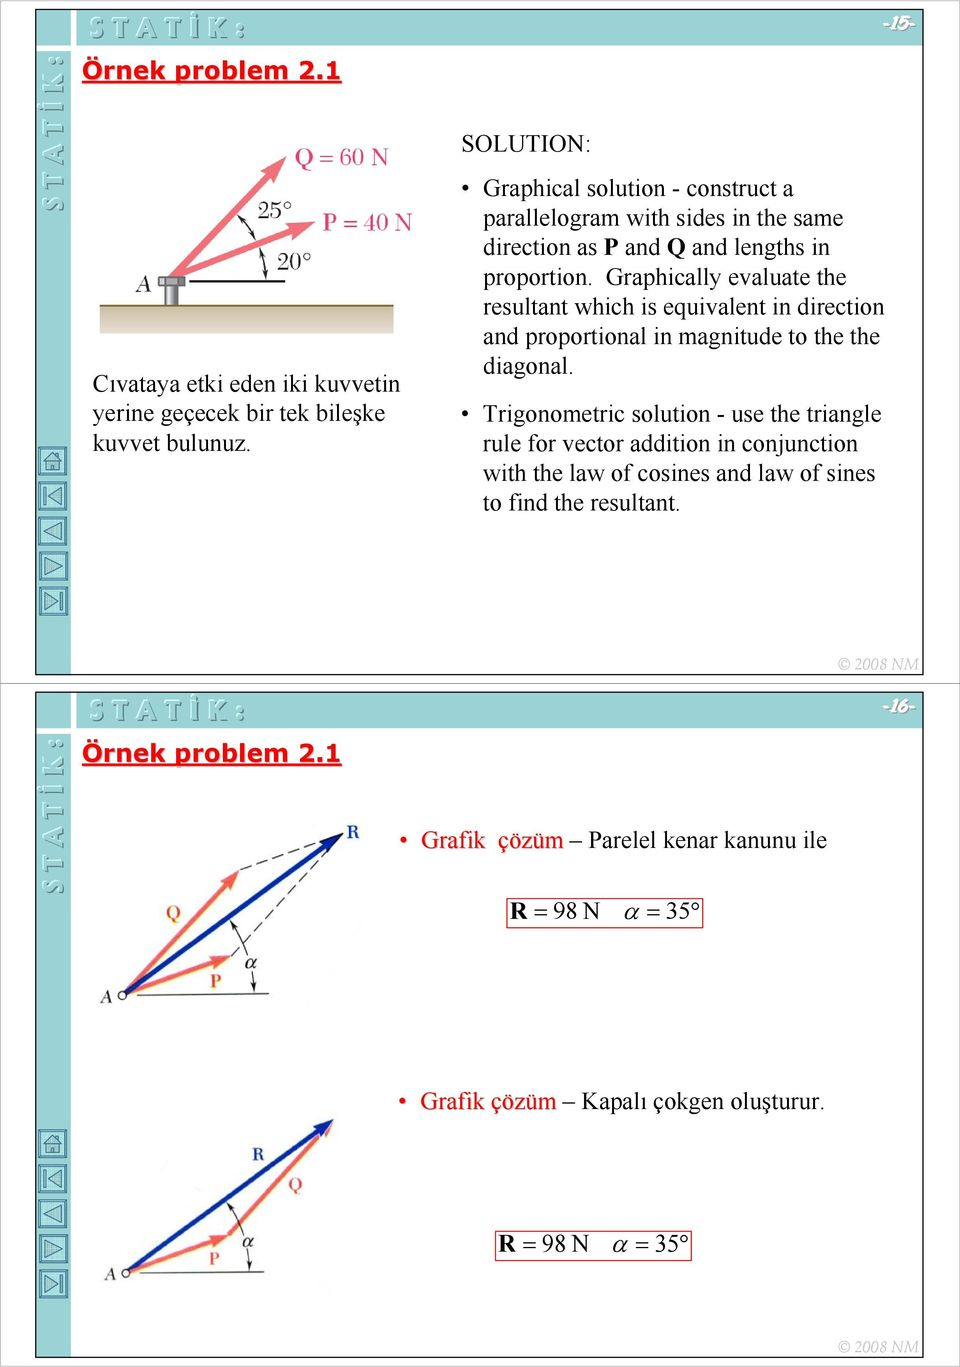 Graphicall evaluate the resultant which is equivalent in directin and prprtinal in magnitude t the the diagnal.